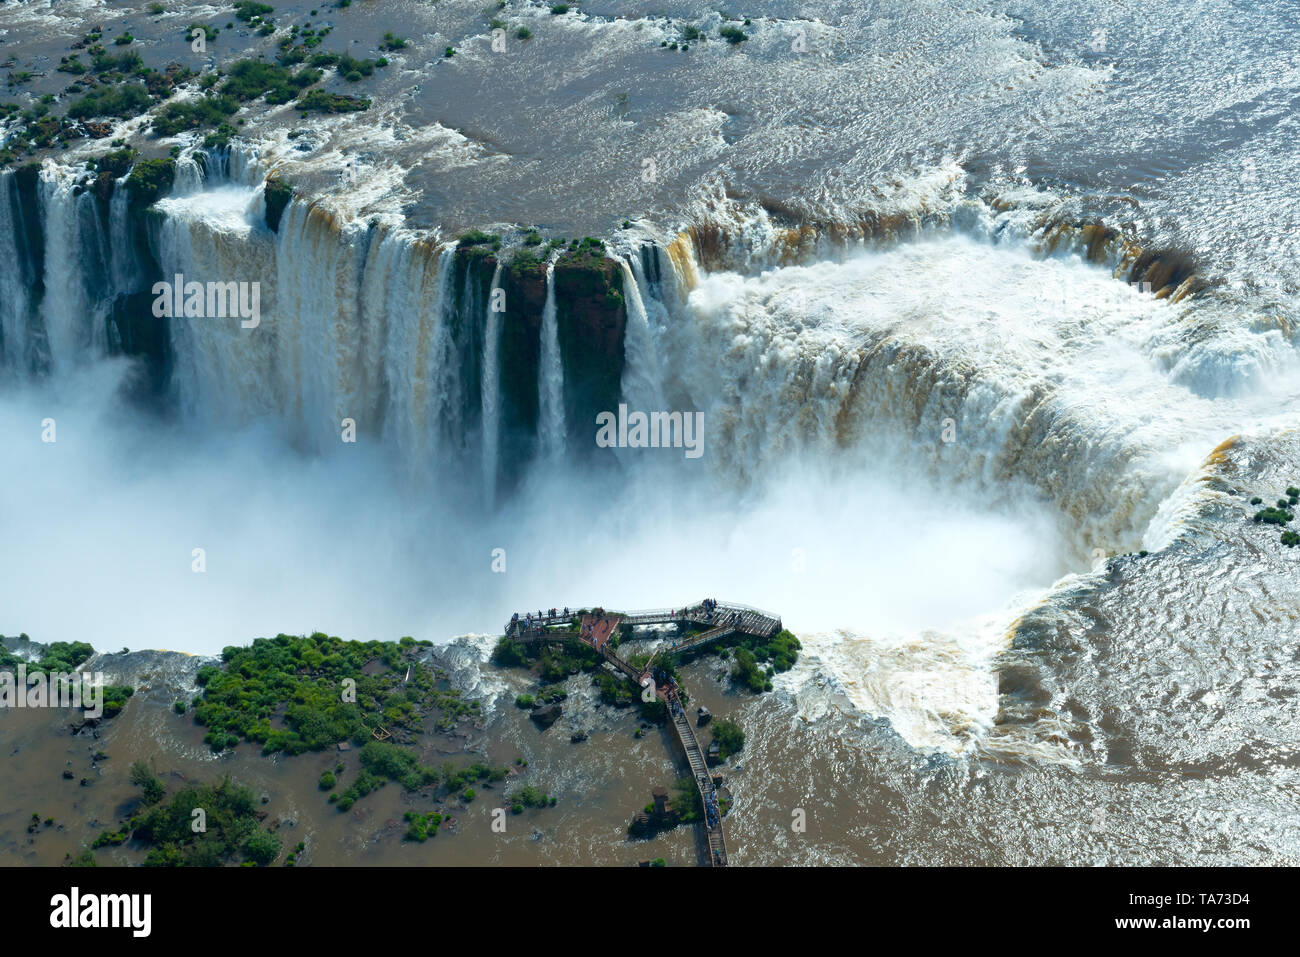 Aerial view of Iguazu Falls in the border of Argentina and Brazil Stock Photo